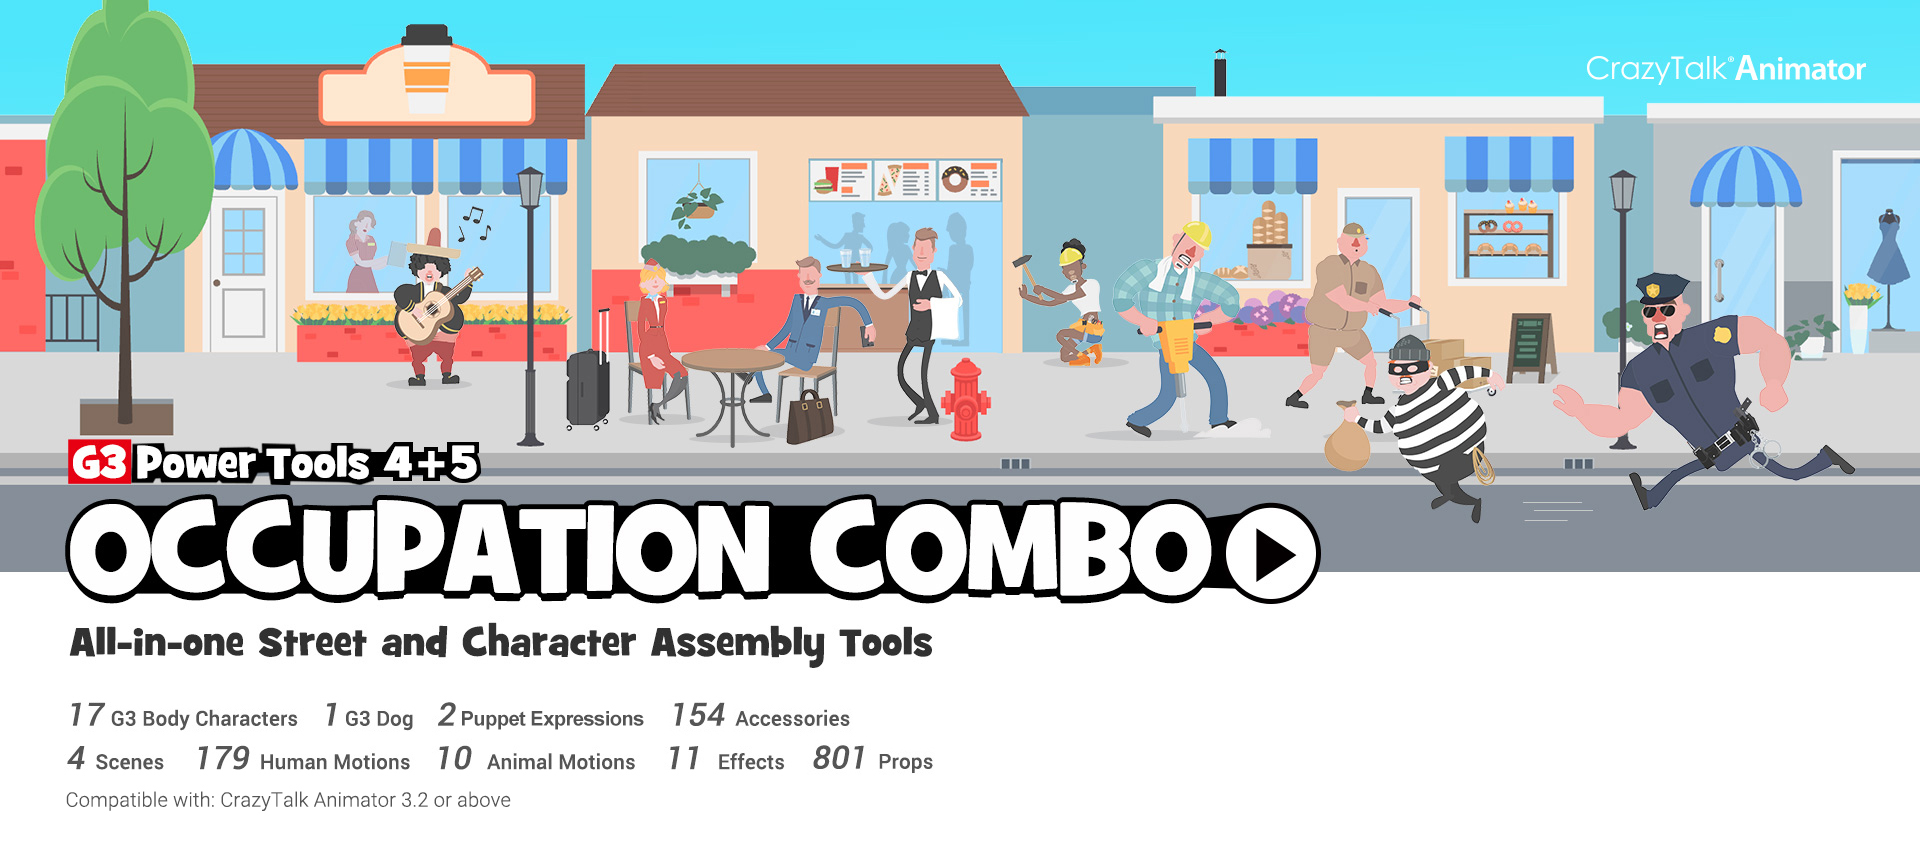 CrazyTalk Animator 3 content - G3 Power Tools 4+5 Occupation